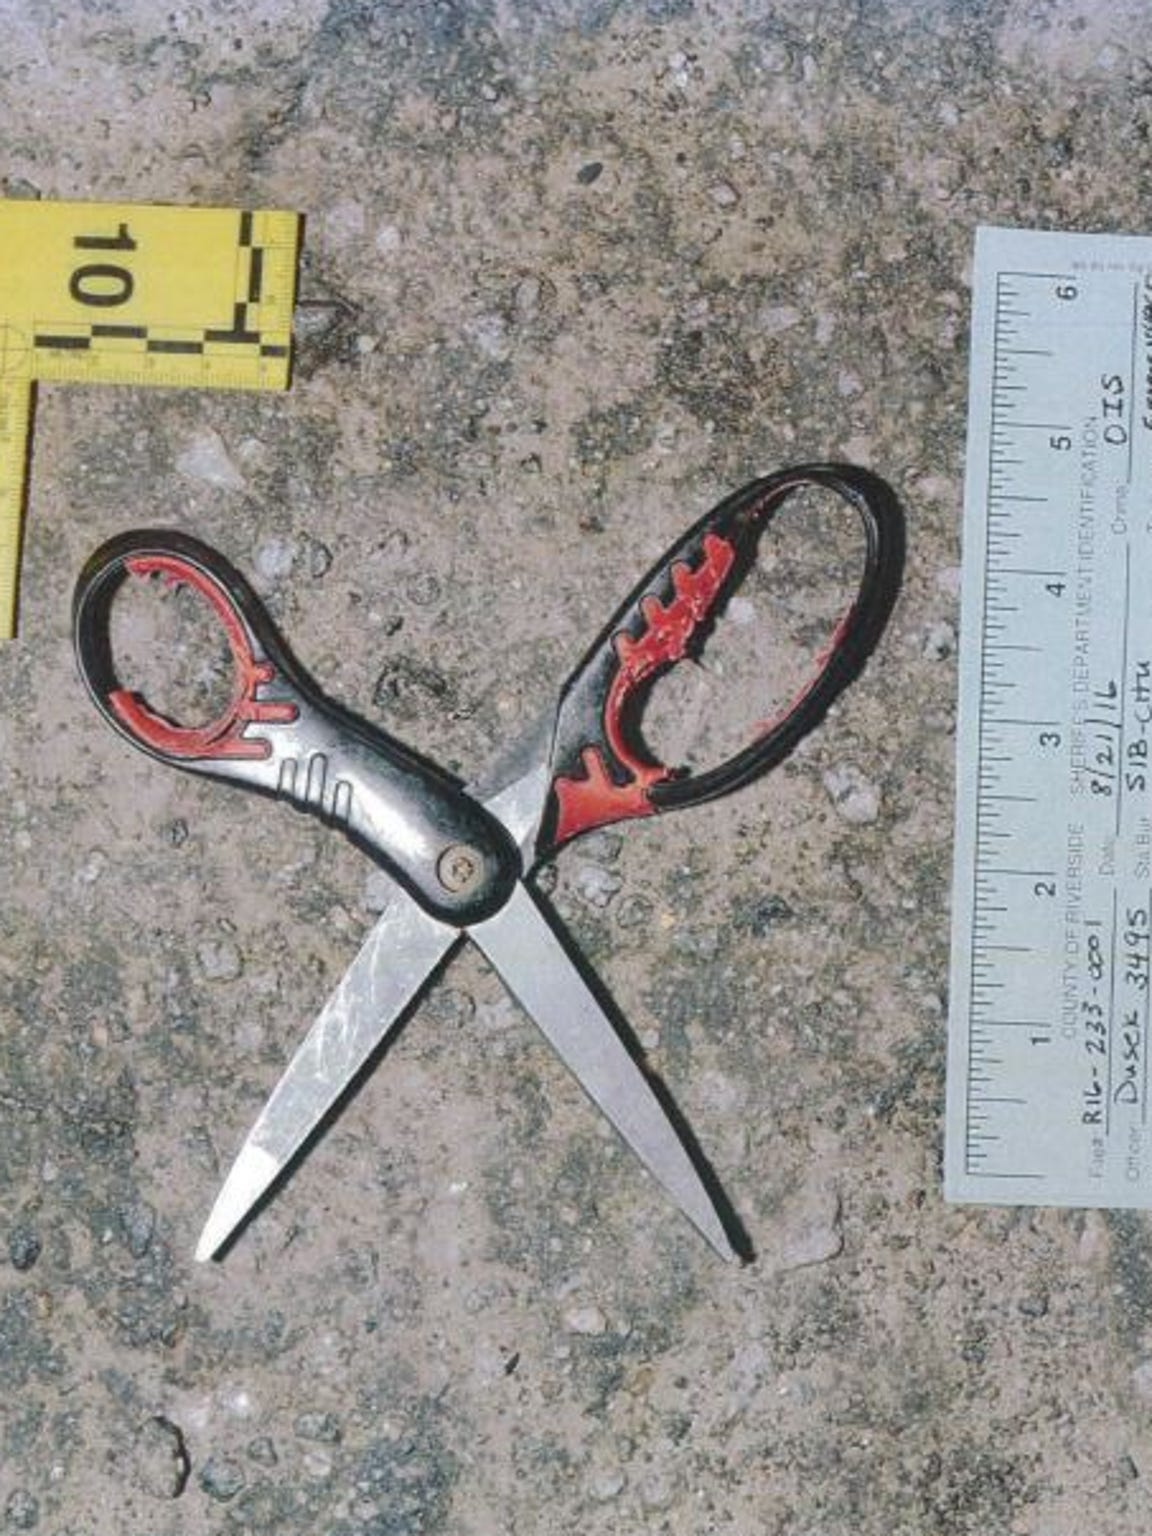 Indio police say Pedro Montanez was armed with this pair of scissors when he was fatally shot in August 2016.